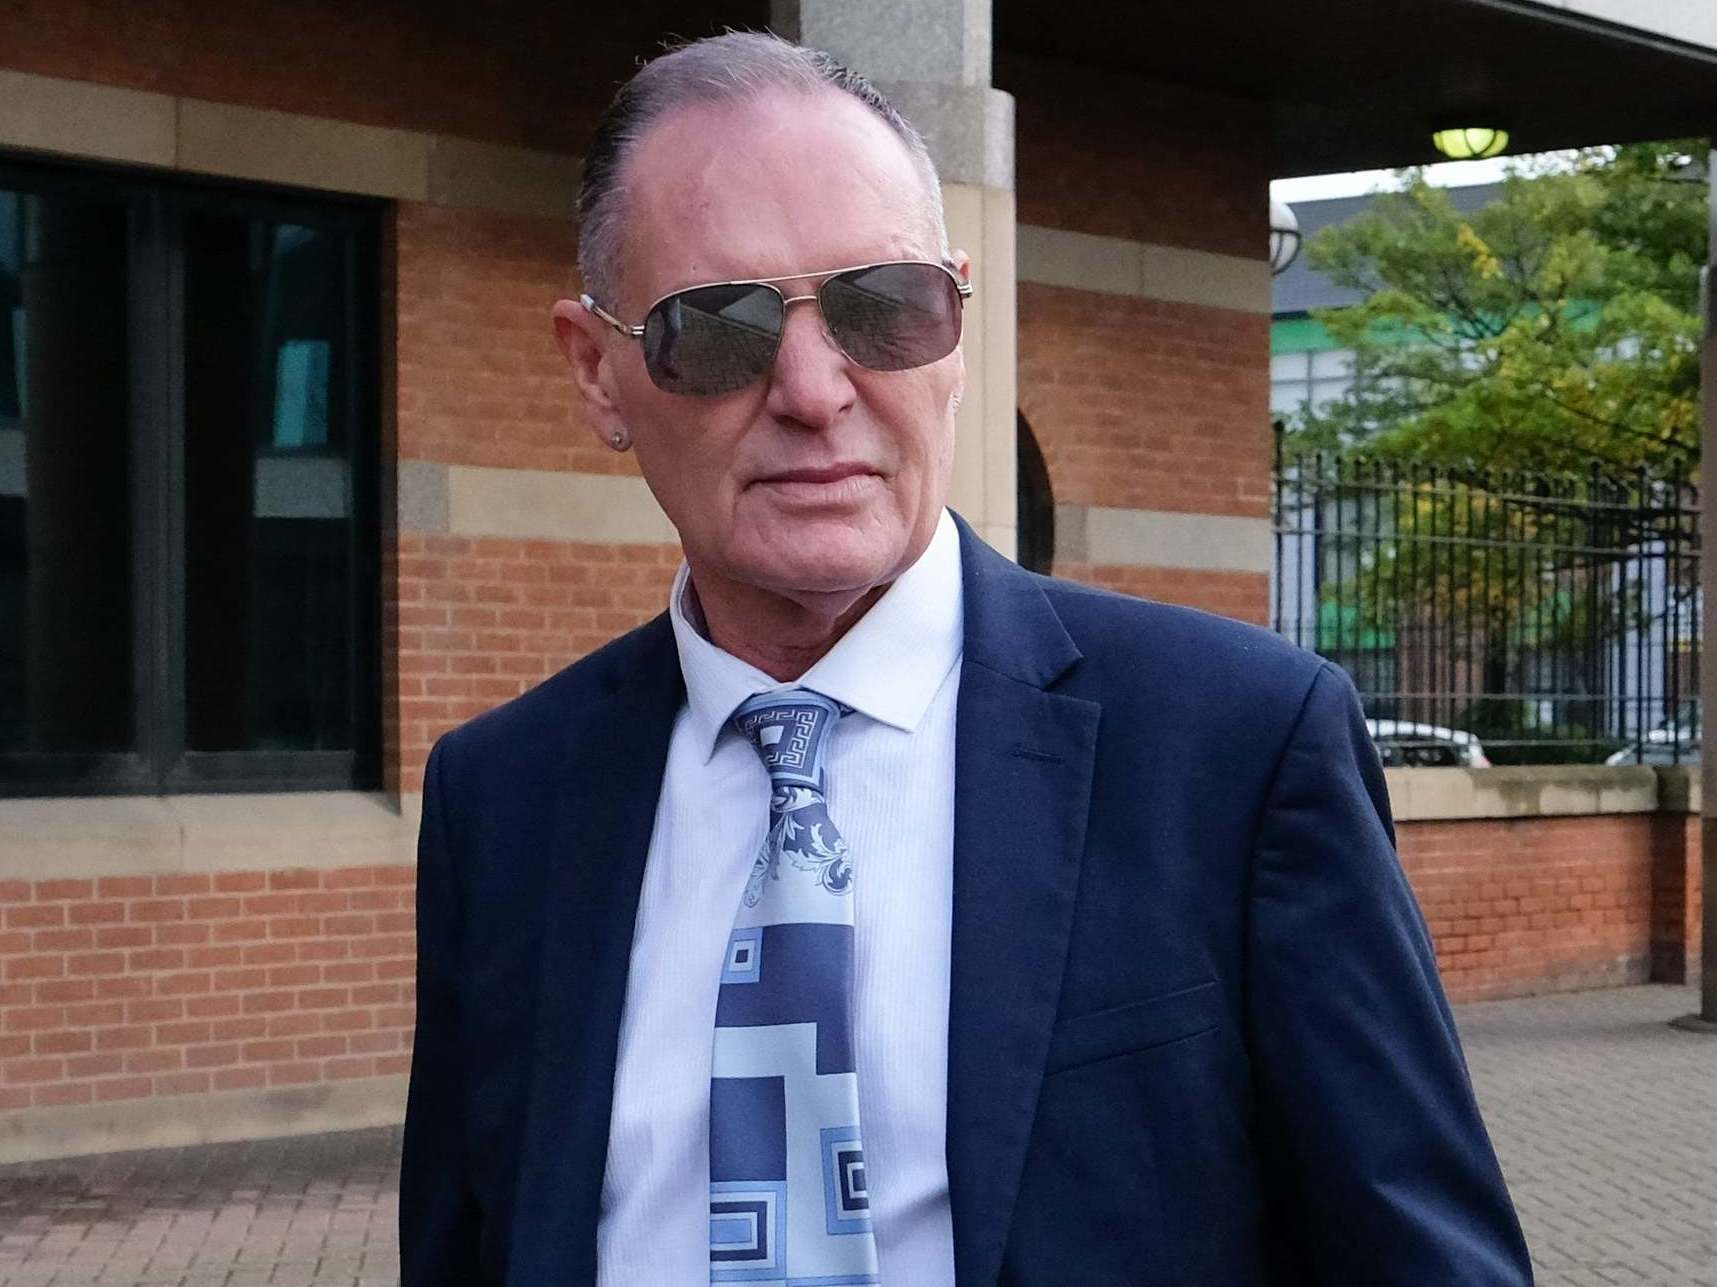 """Paul Gascoigne: Ex-footballer 'forcefully kissed """"fat lass"""" on lips to boost her confidence', court hears"""